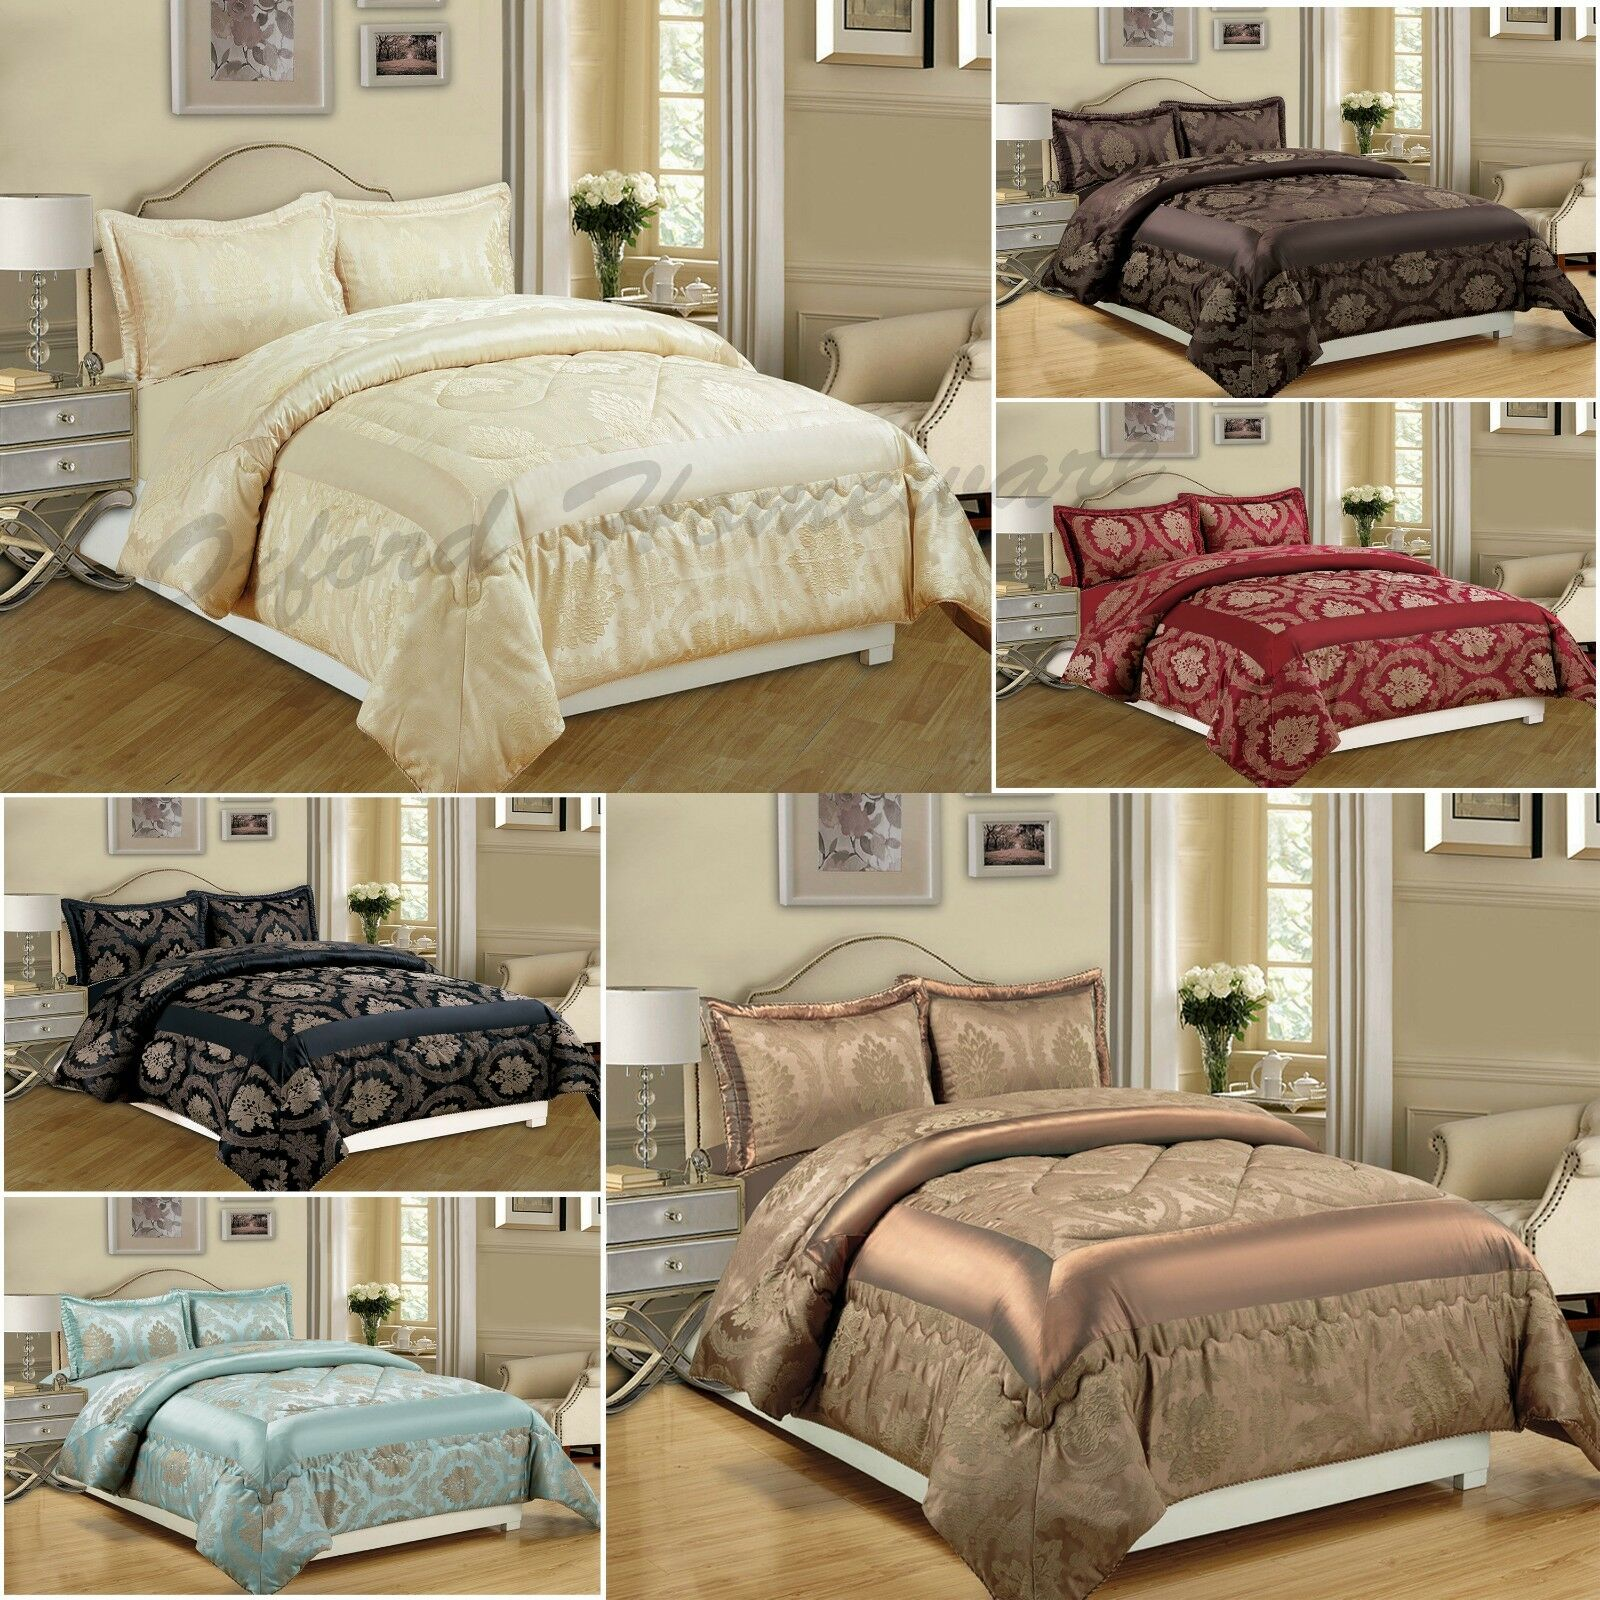 Luxury Jacquard 3Piece Quilted Bedspread Comforter Set With Pillow Cases UK Größe